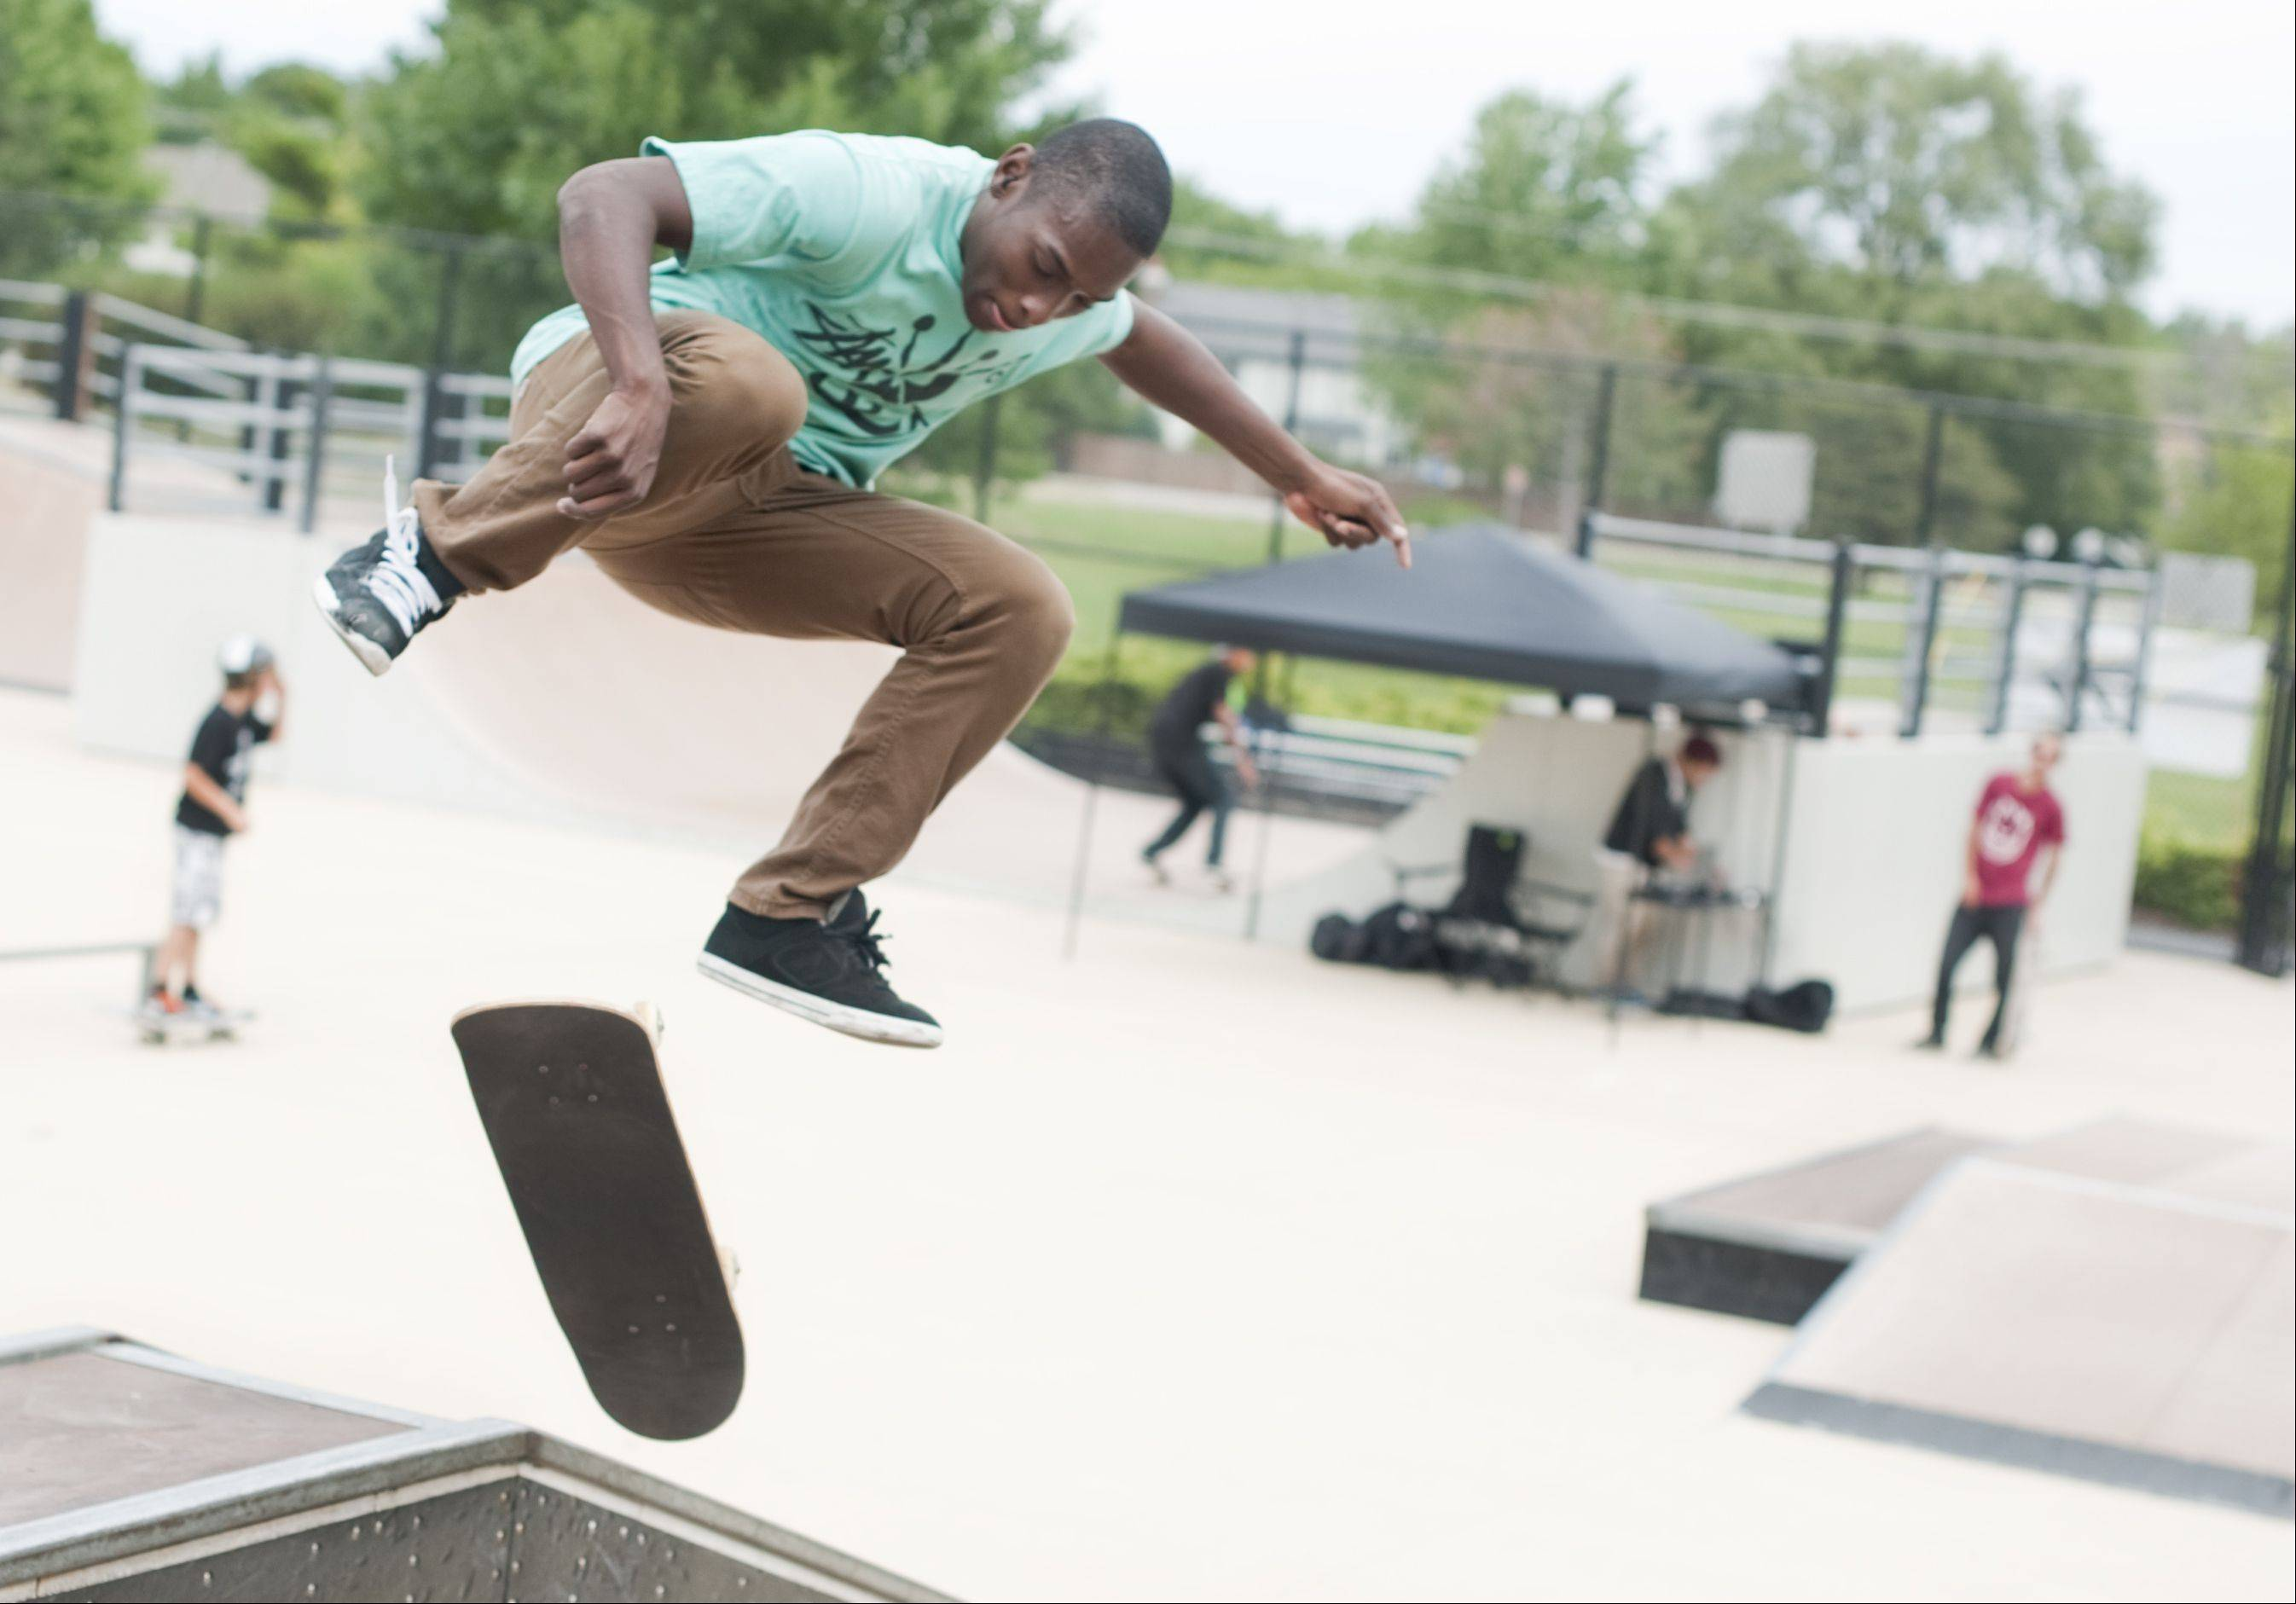 Marcell Purham of Wheaton attempts a board flip at the BMX and Skateboard Contest hosted by the Geneva Park District at the 1800 South Street skate park in Geneva Sunday. Purham placed first in the intermediate level competition as well as best trick competition.